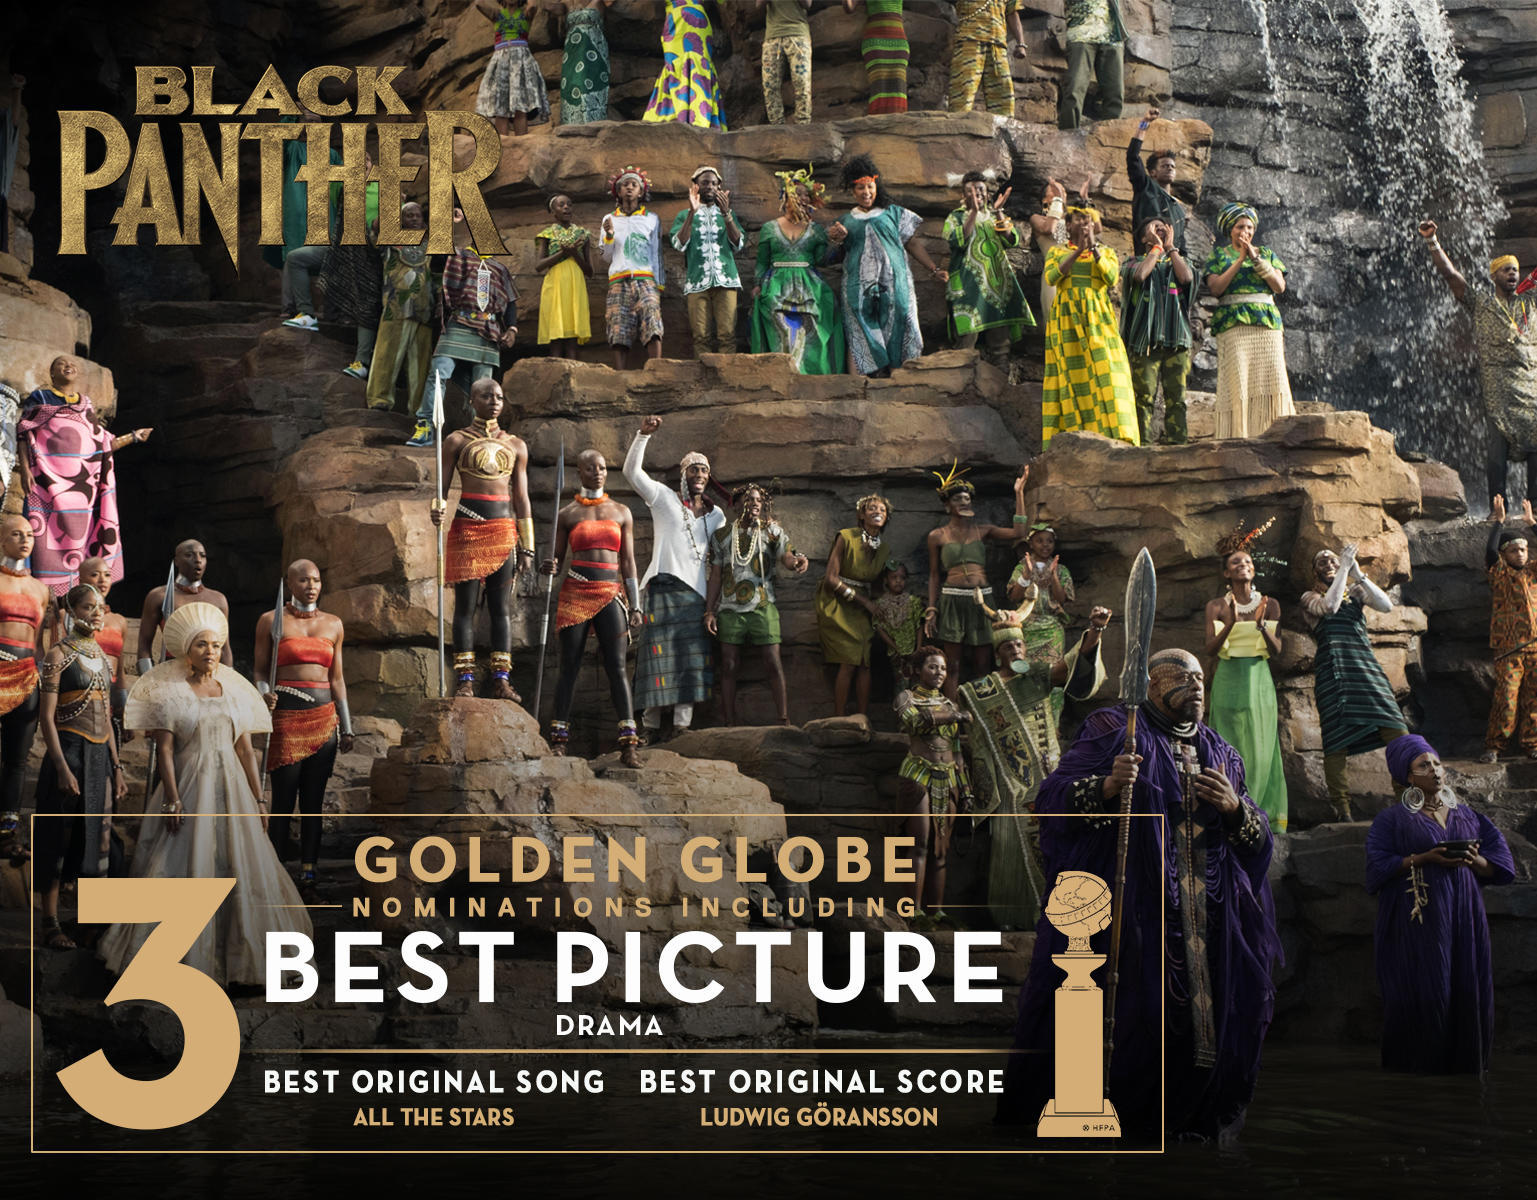 Black Panther Golden Globe Nominations